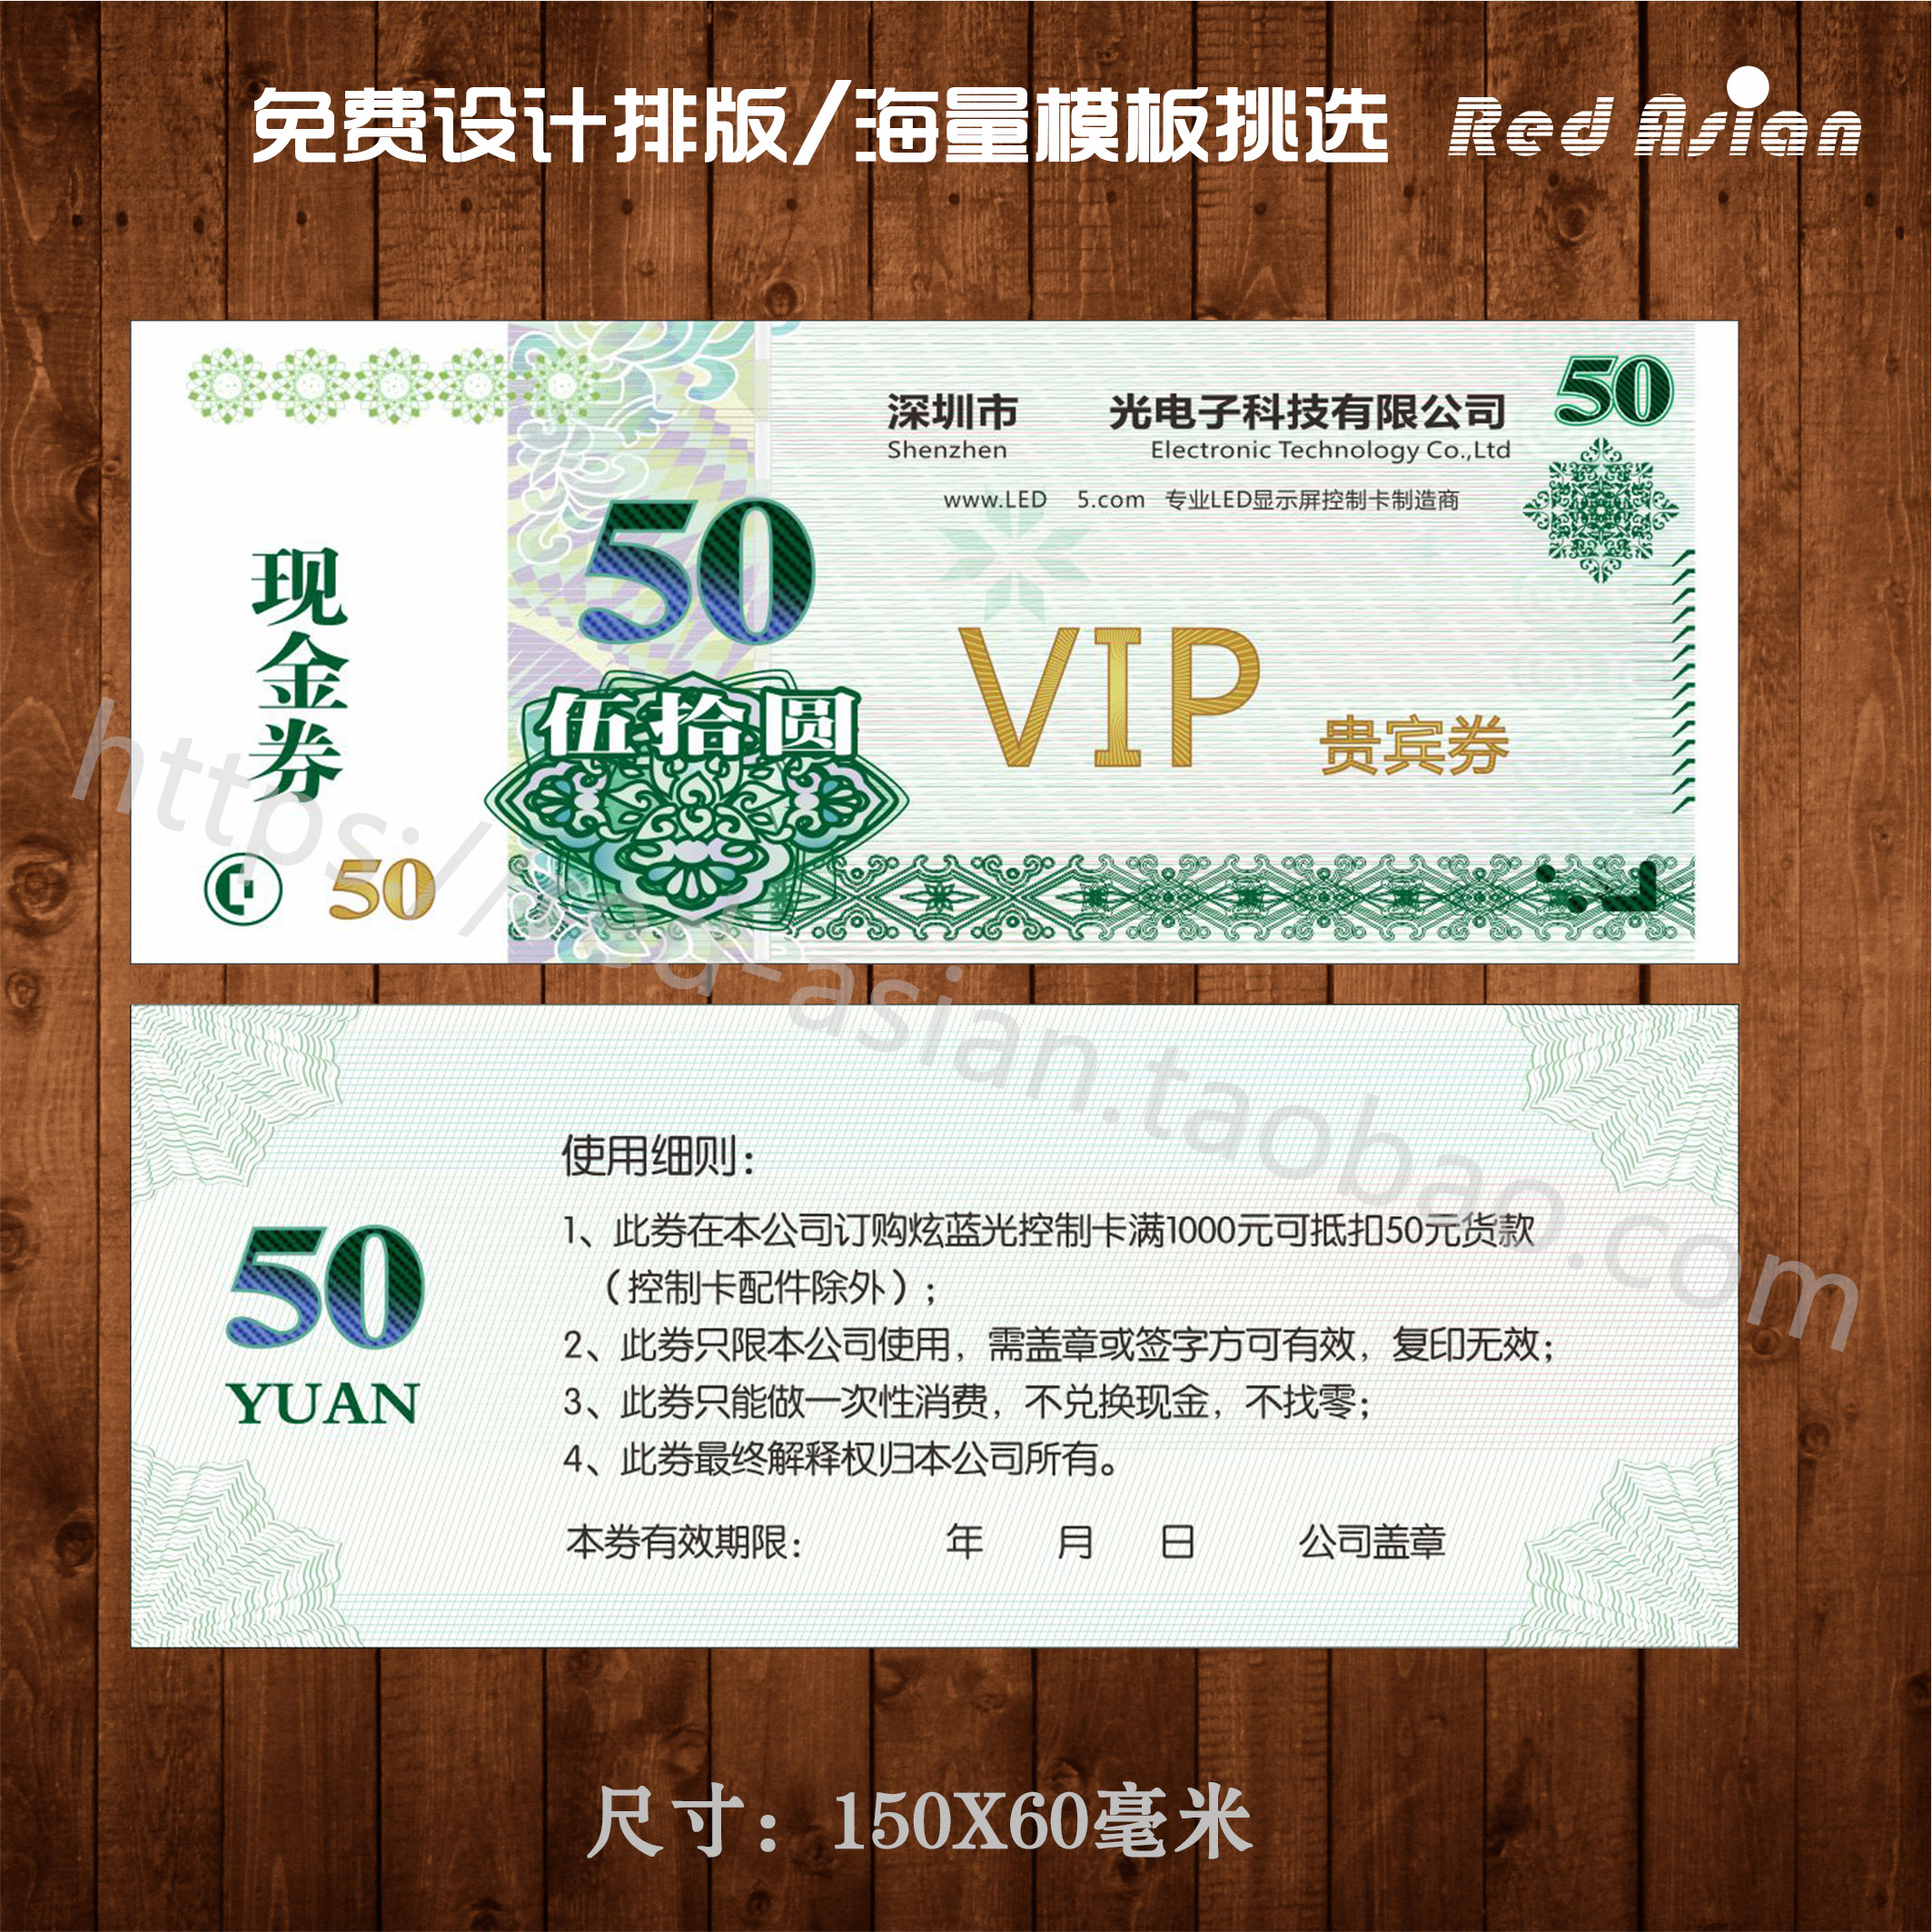 Voucher design, production, printing, banknote printing, preparation, customization of voucher template